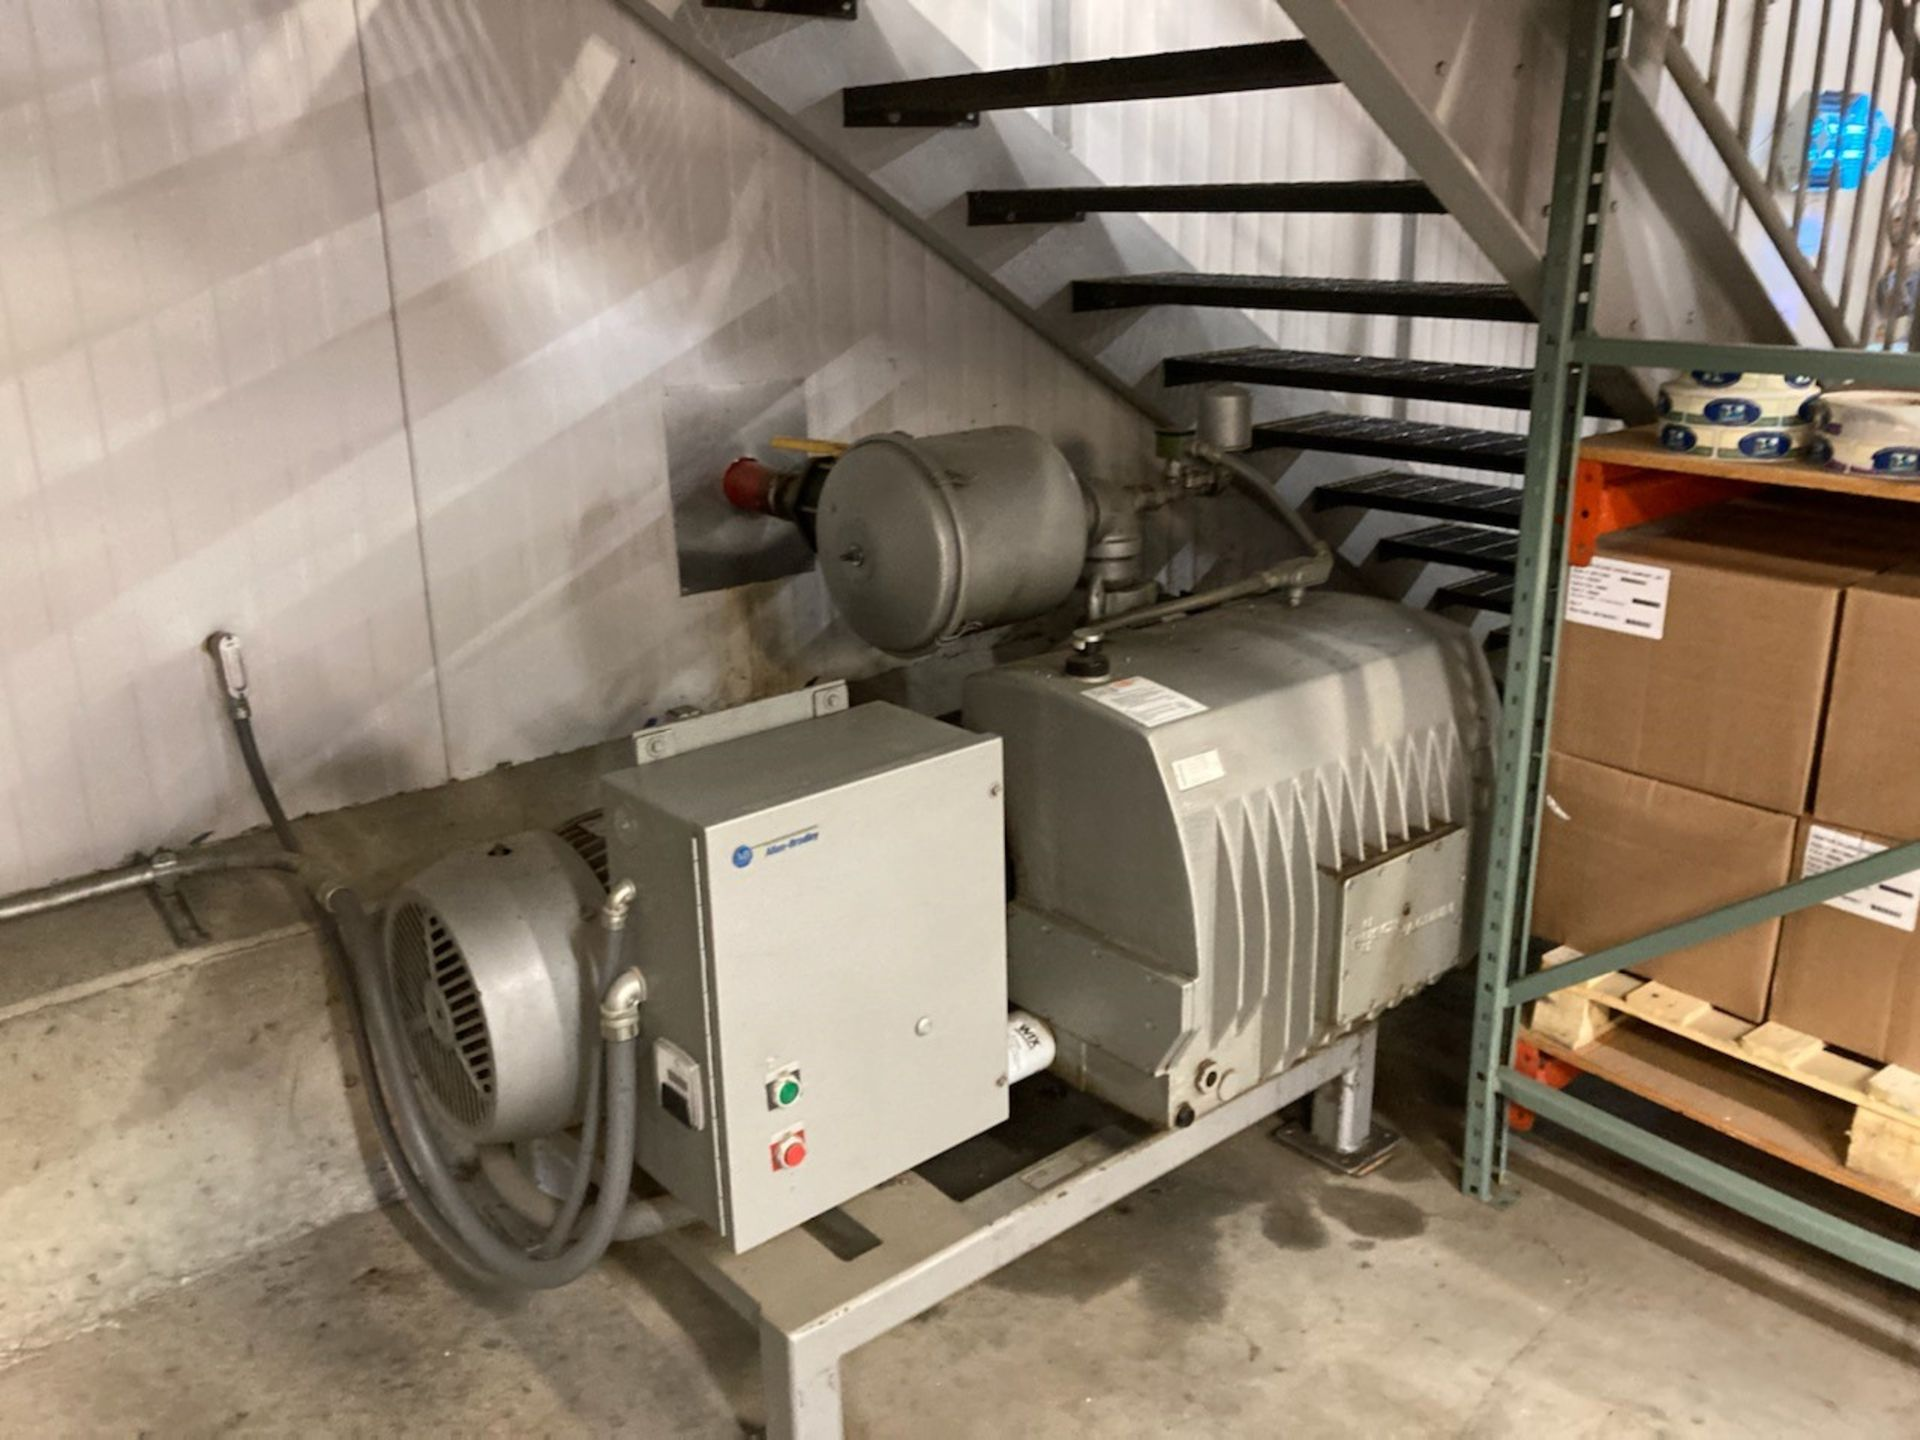 Cryovac Old Rivers Rotary Vacuum Chamber Sealer Model 8610T-14E : SN 0723732, with Busch Vacuum Pump - Image 3 of 3